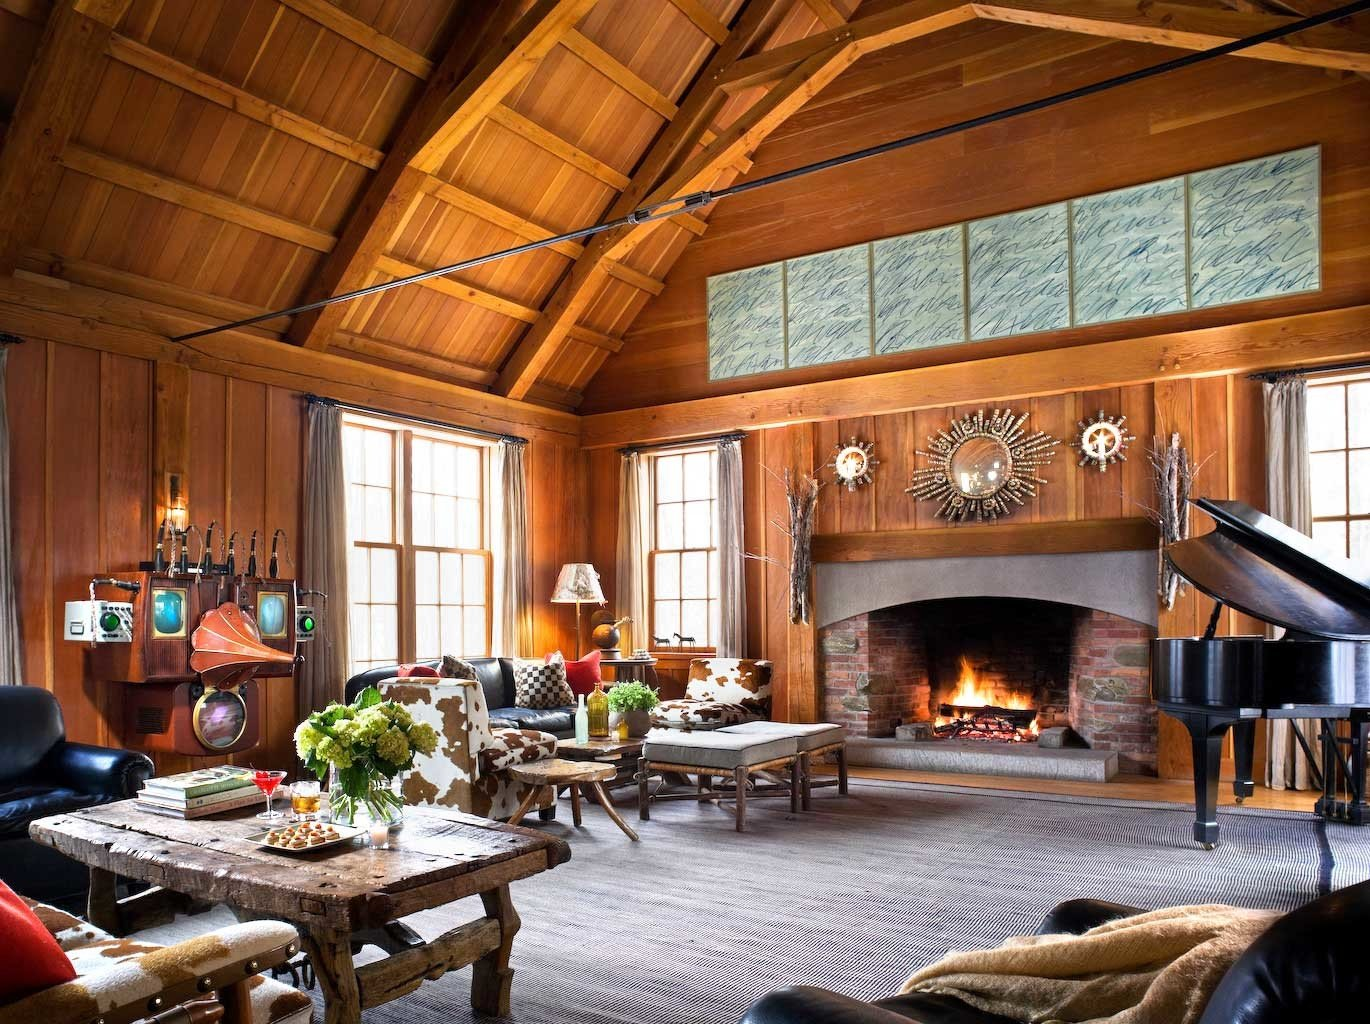 All-Inclusive Resorts Hotels Romantic Hotels indoor Living room Fireplace fire ceiling building property estate living room home interior design log cabin cottage wood real estate furniture farmhouse recreation room area stone